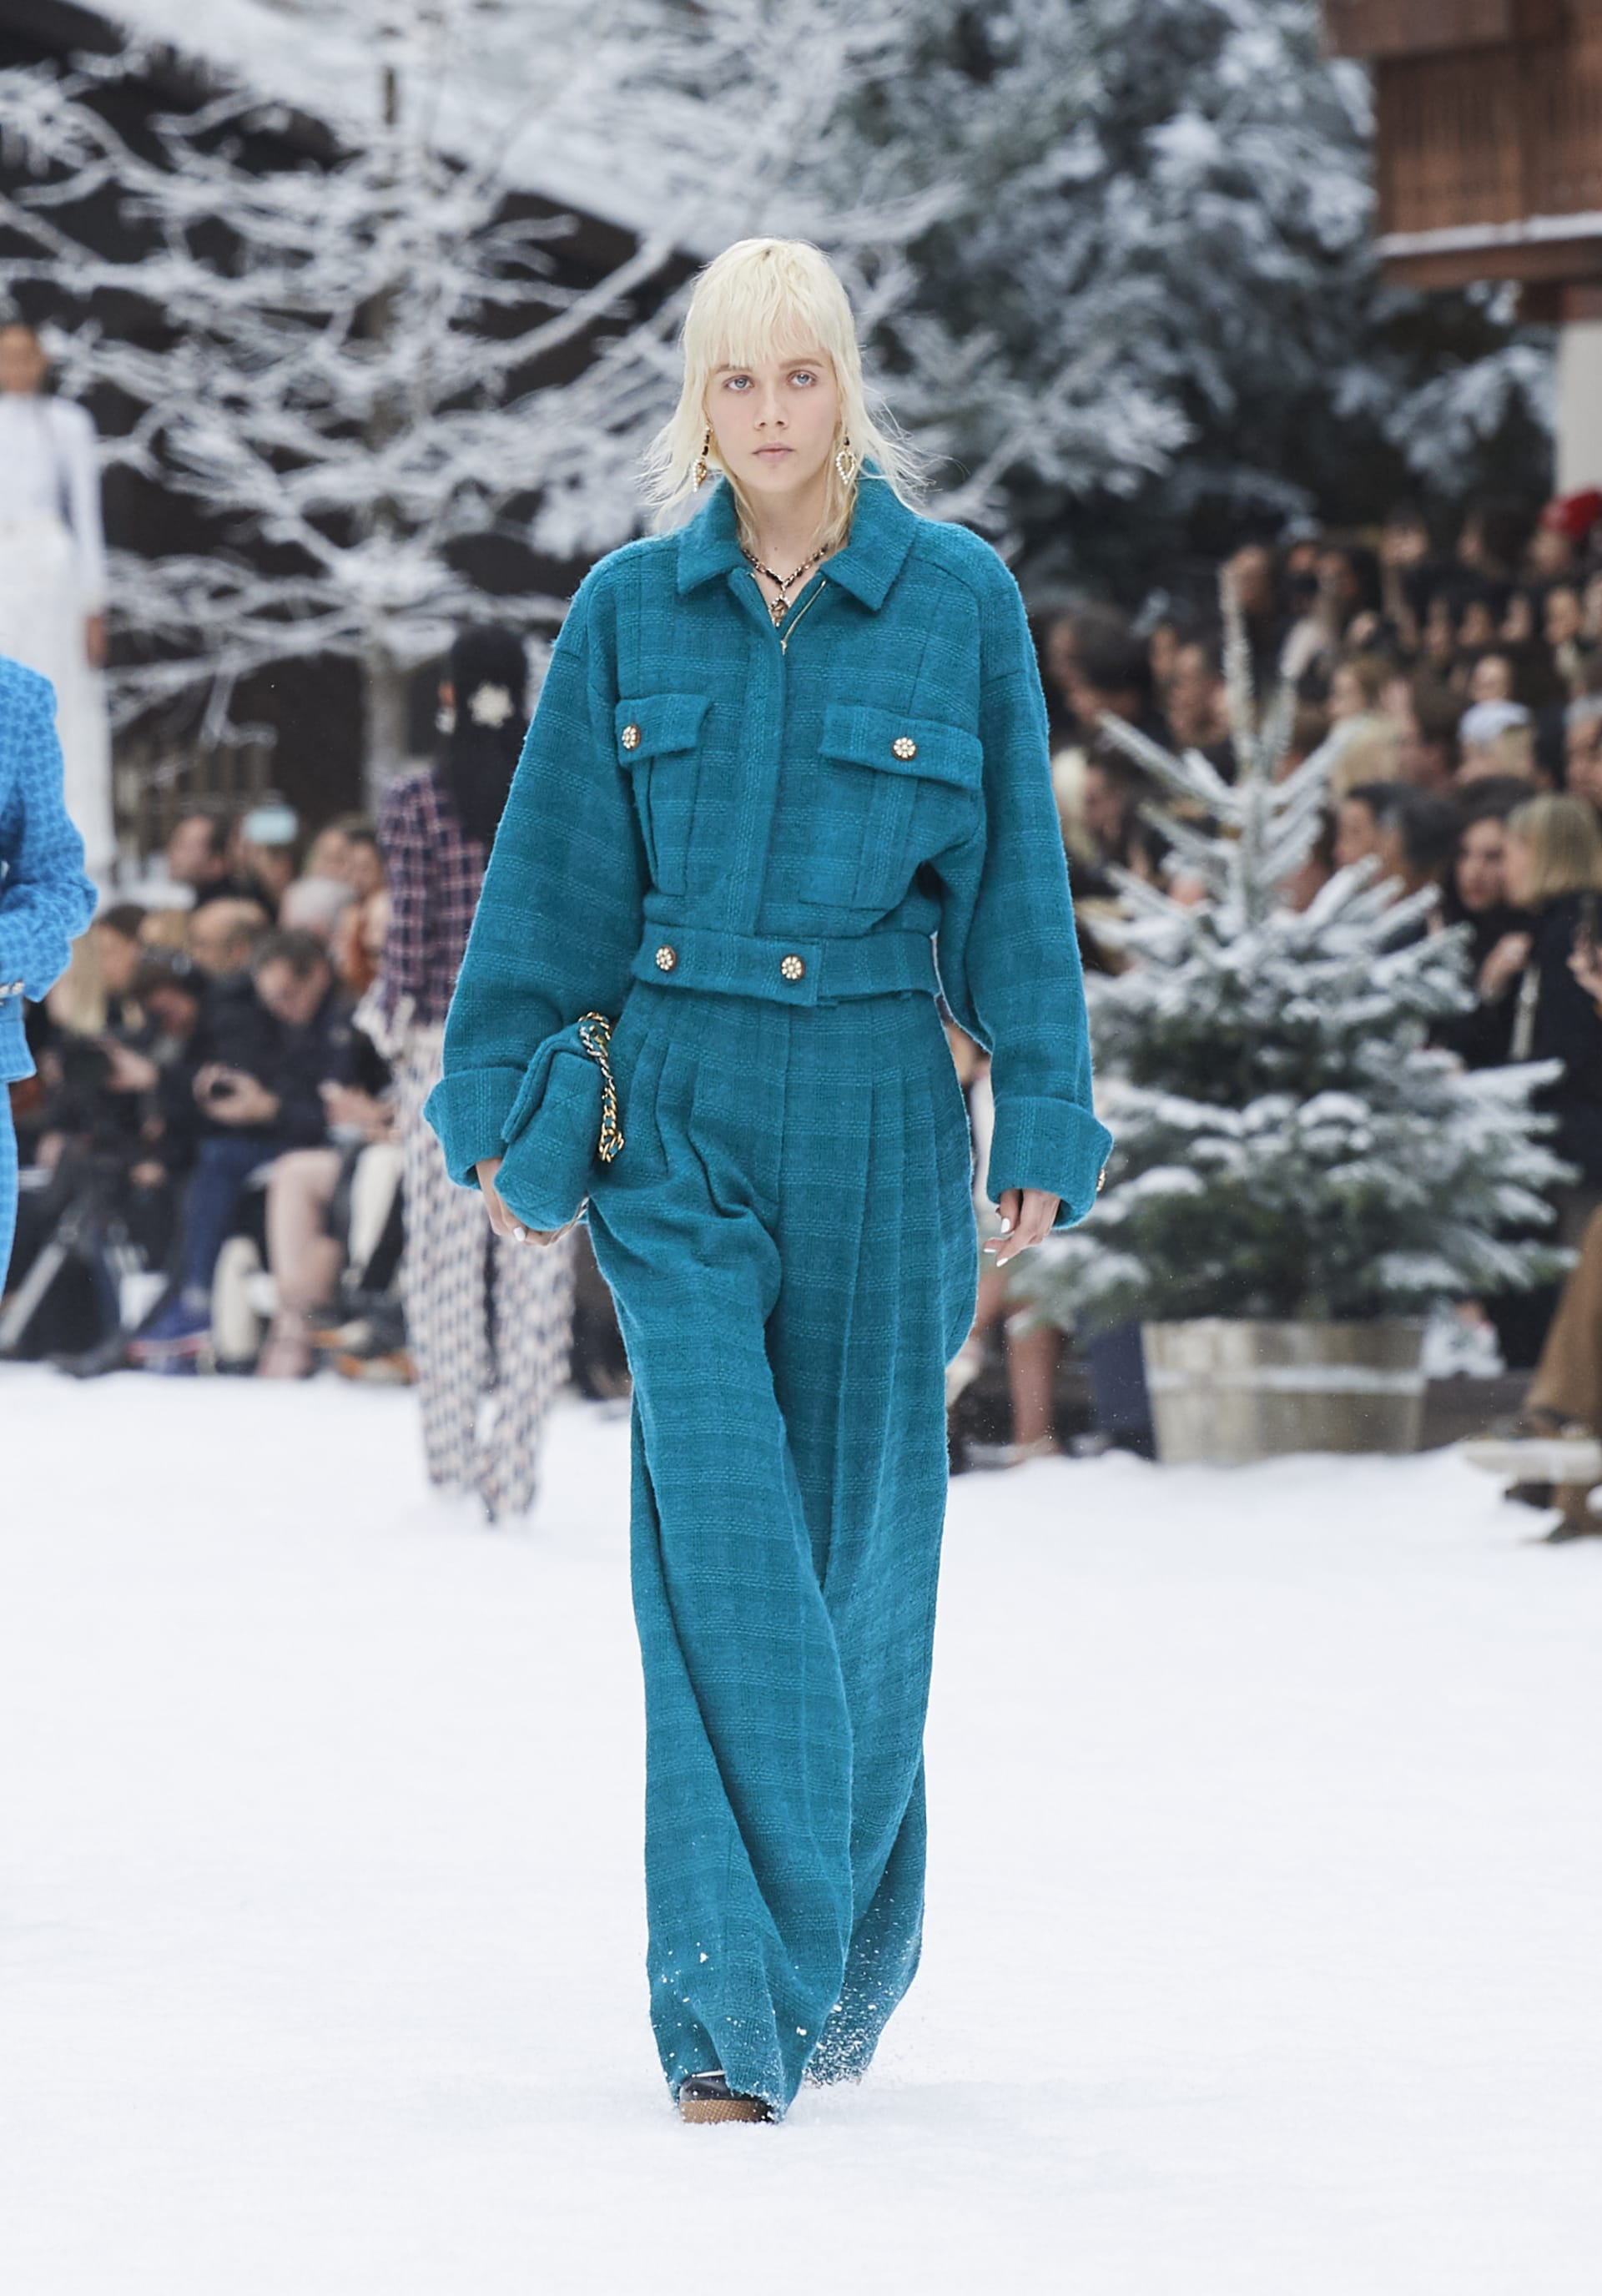 View 1 - Look 42 - Fall-Winter 2019/20